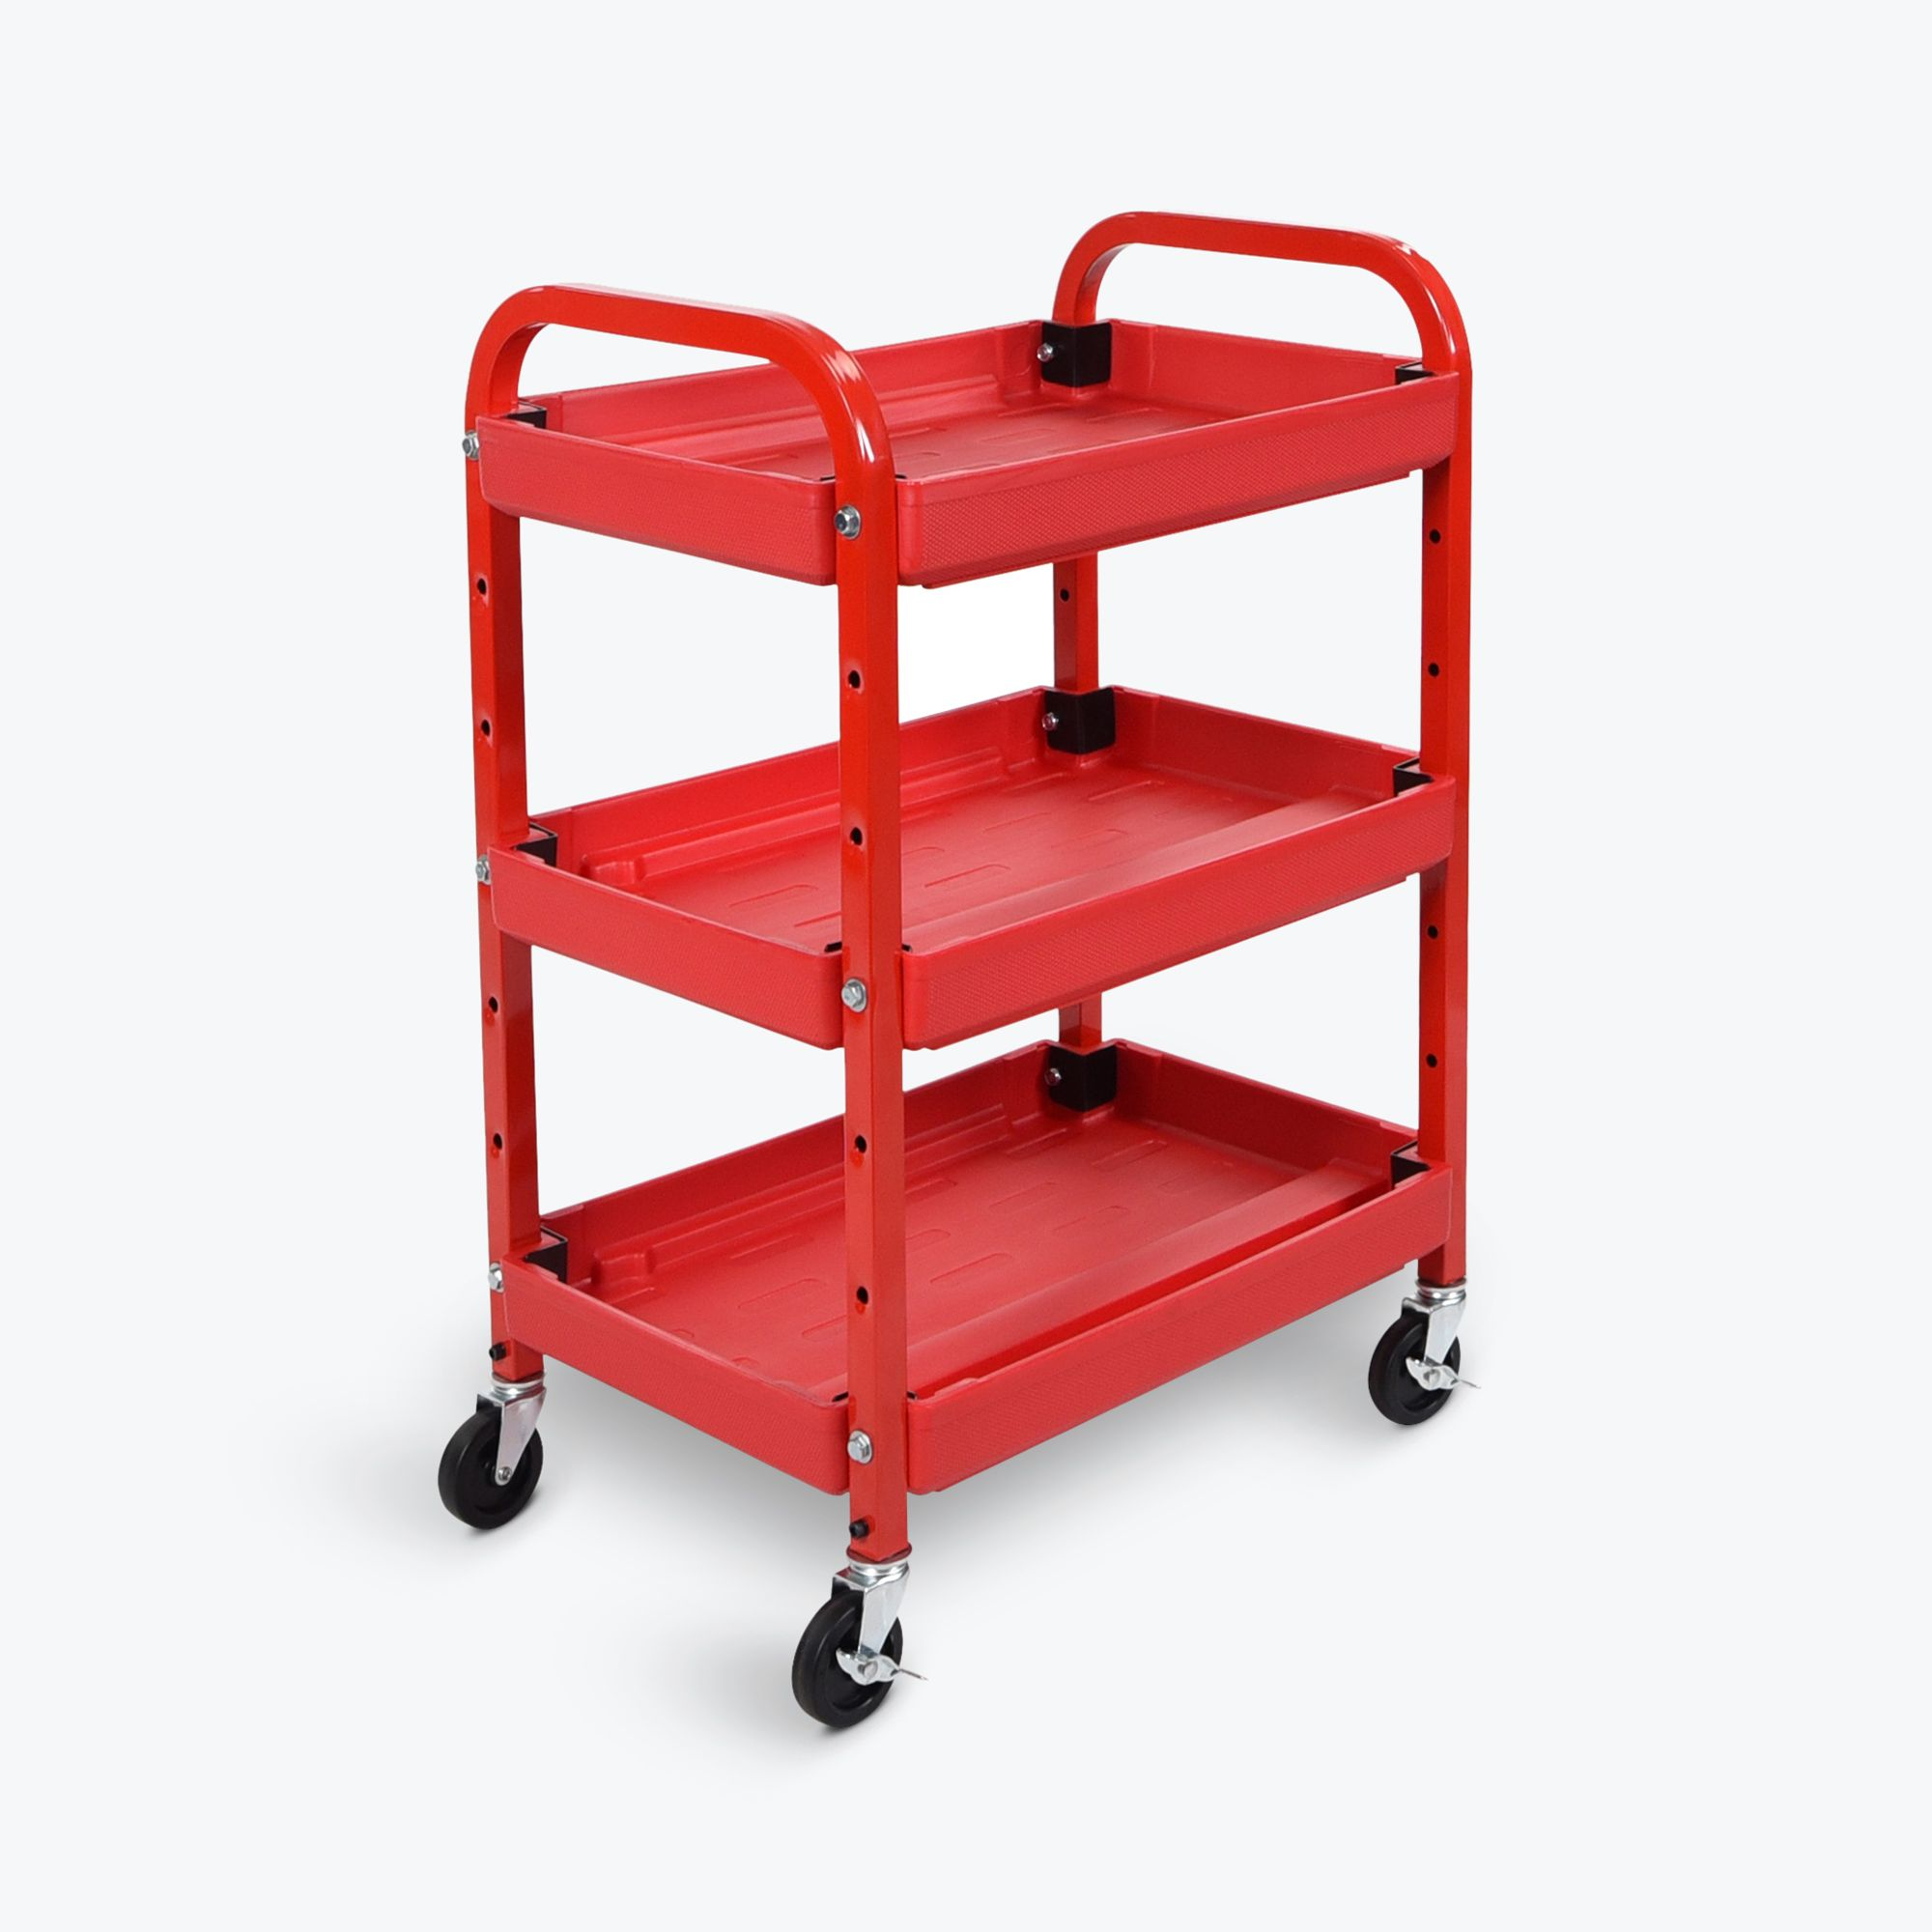 Luxor Multipurpose Home Office Mobile 3 Shelf AdjustableTuffy Storage Utility AV Metal Rolling Cart